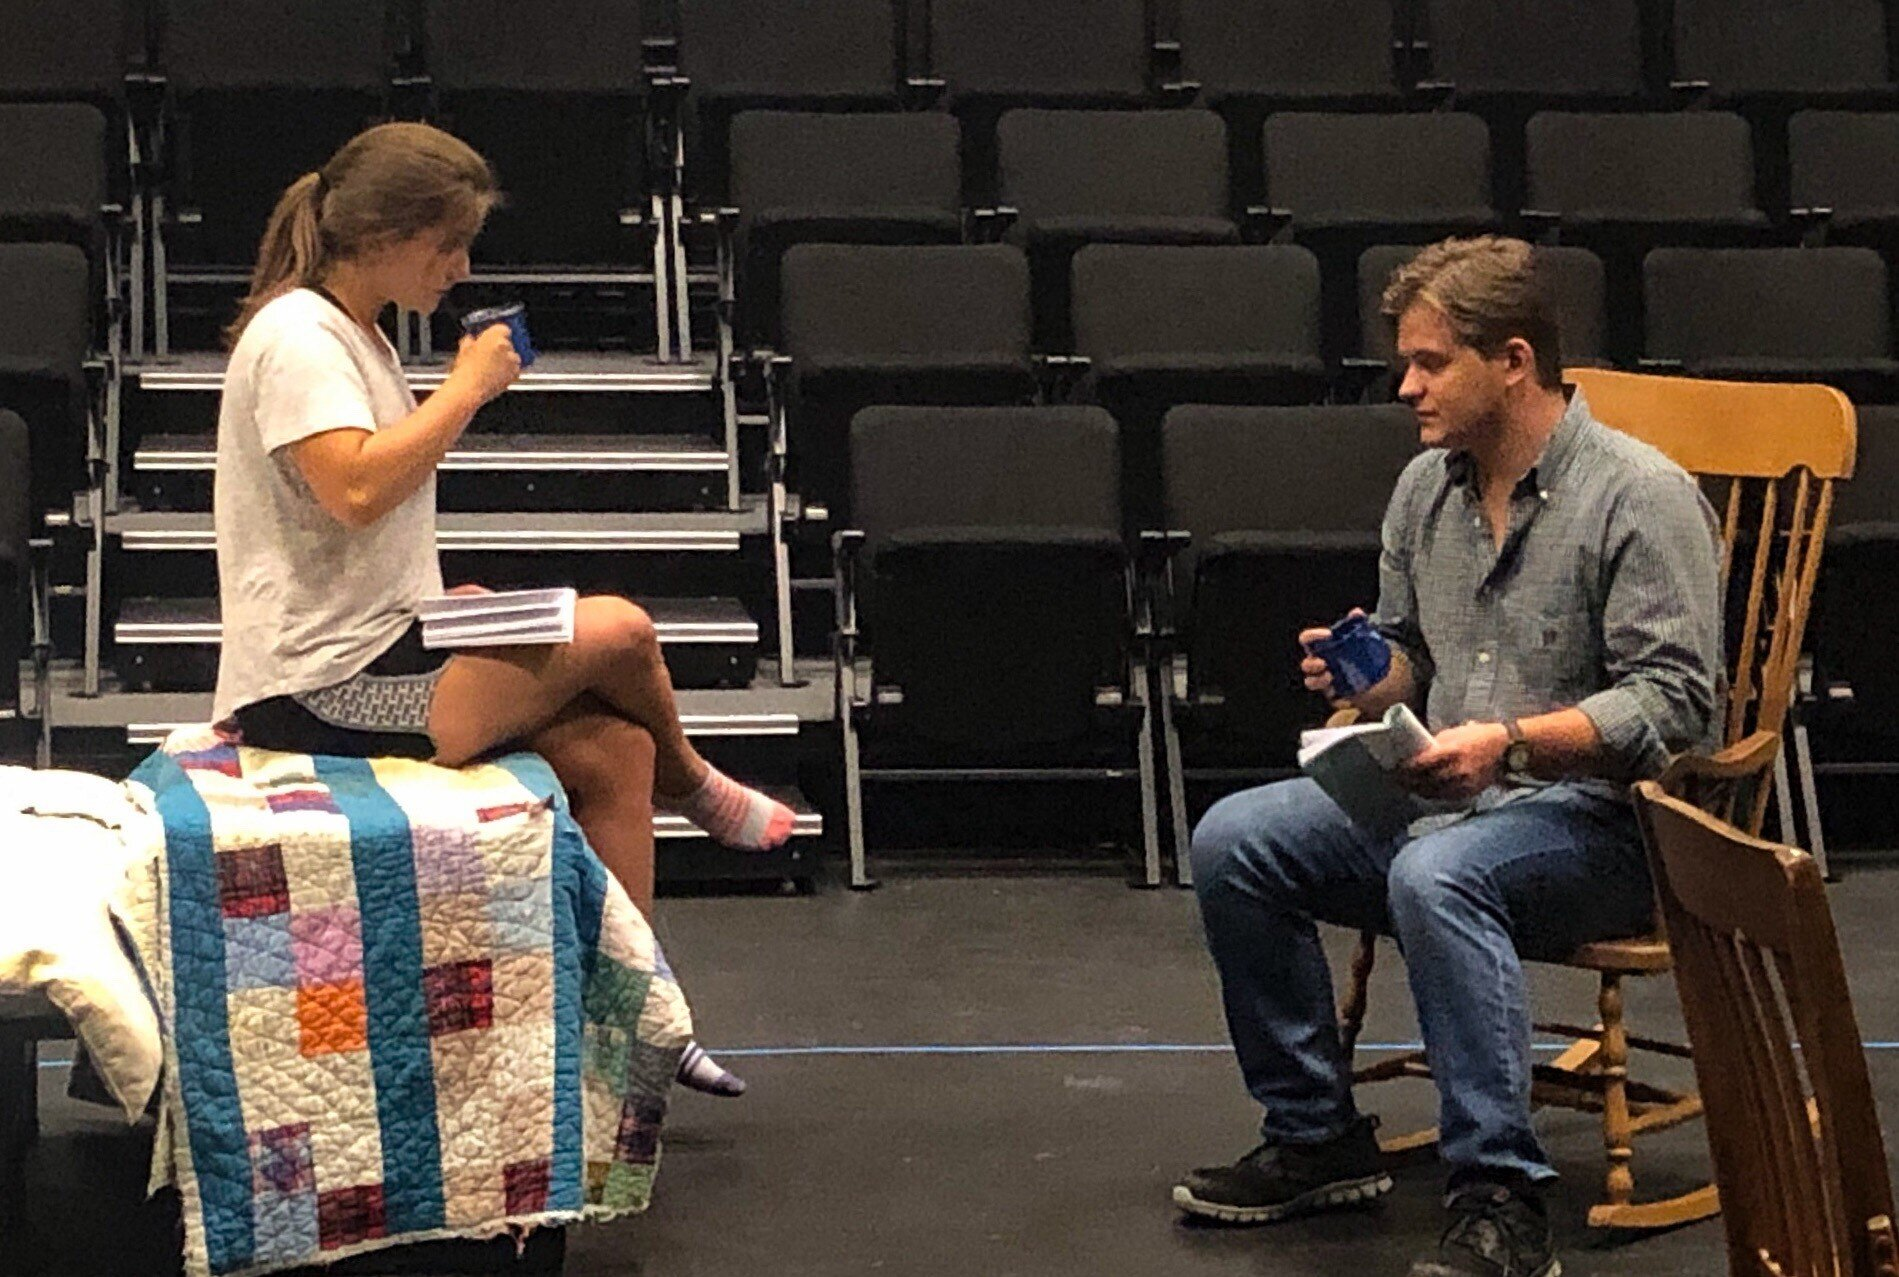 Laura Harris, portraying Rosannah, and Jake Wallin, playing Henry Harry, are seen during a rehearsal. Photo courtesy of the Lee University Office of Public Relations.